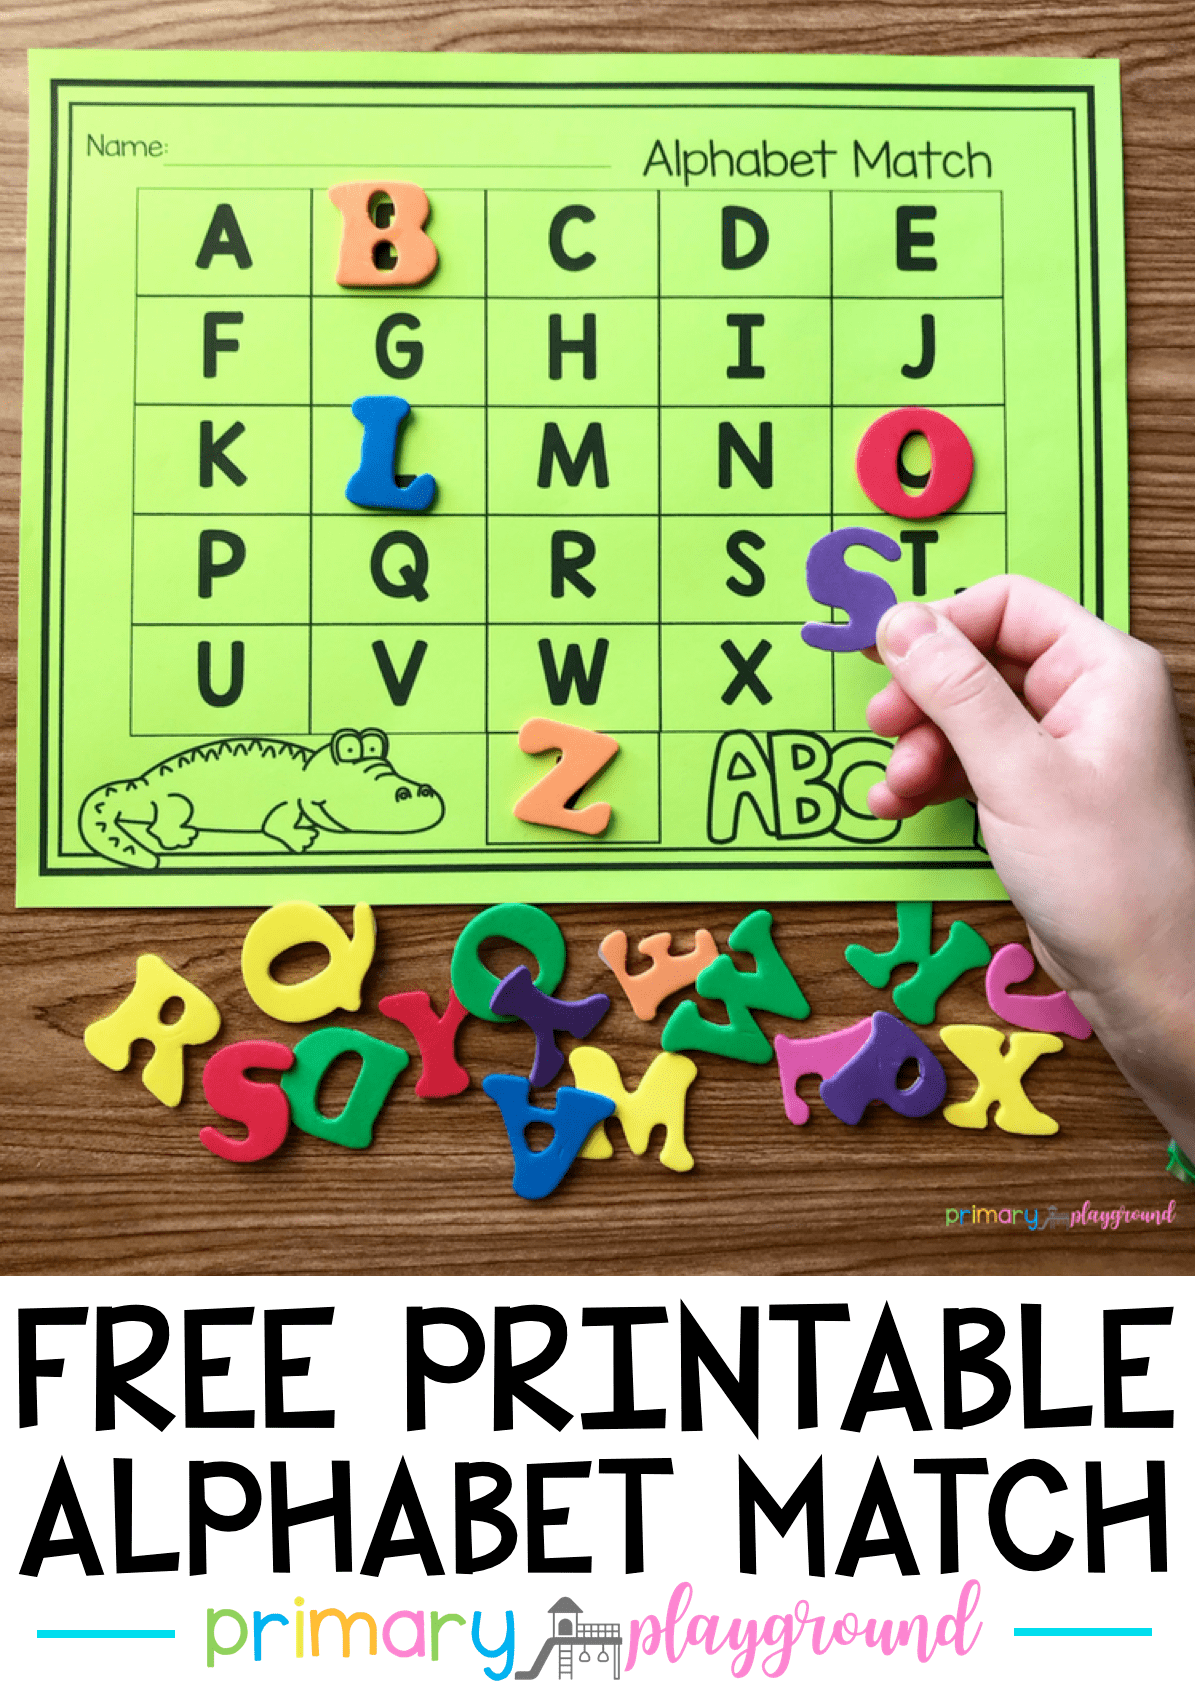 Free Printable Alphabet Match | Alphabet | Pinterest | Preschool ...